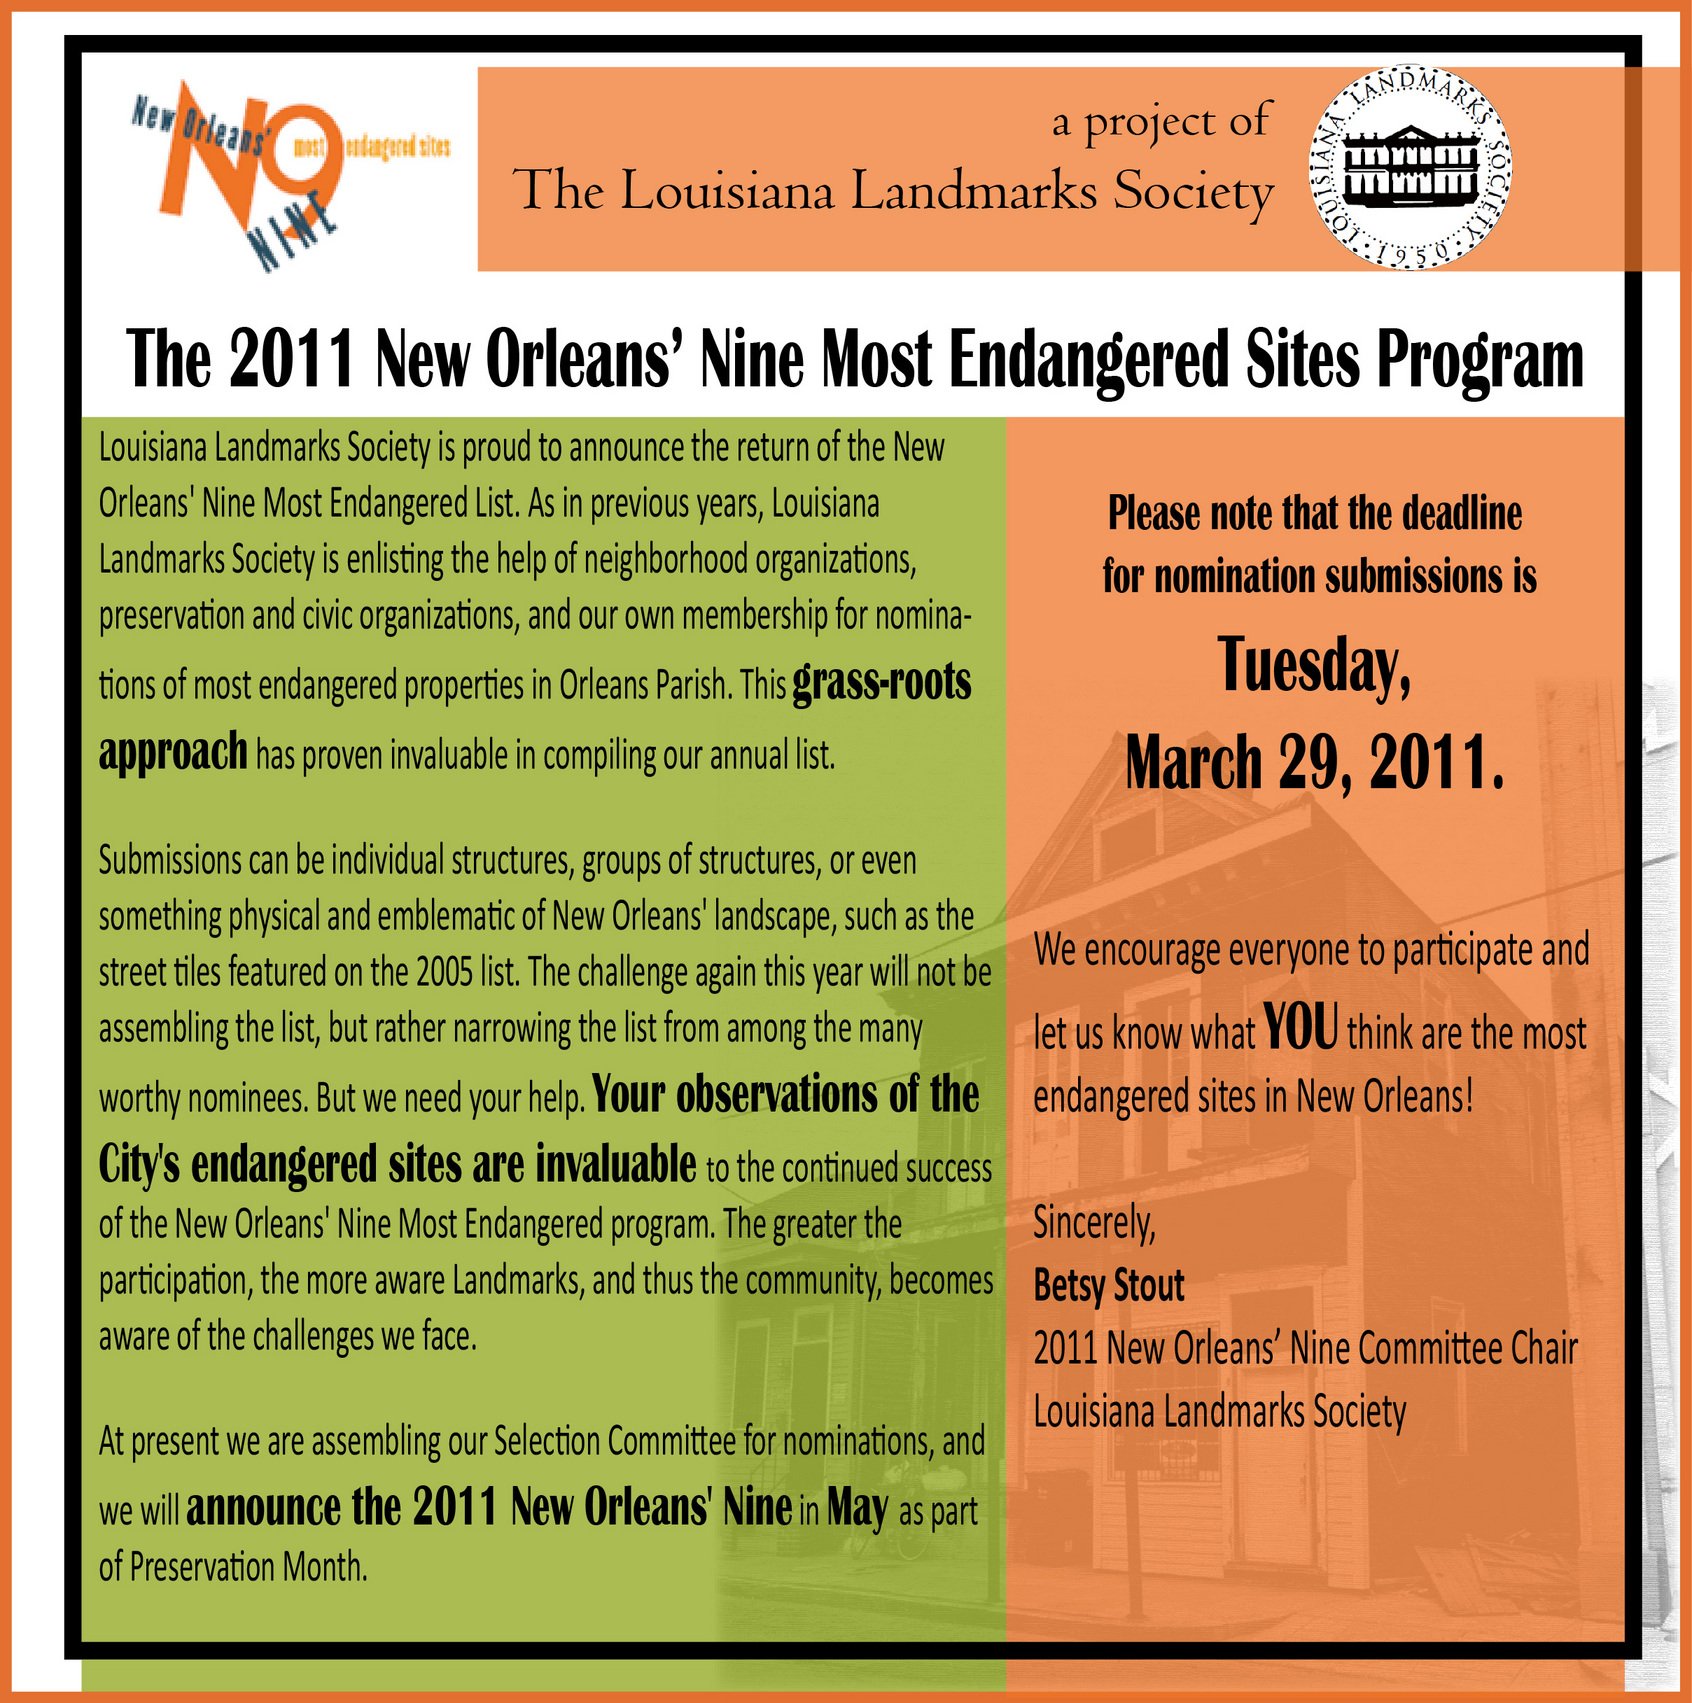 It's nomination time for the 2011 New Orleans' Nine Most Endangered Sites listing.  The deadline for submissions is March 29, 2011.